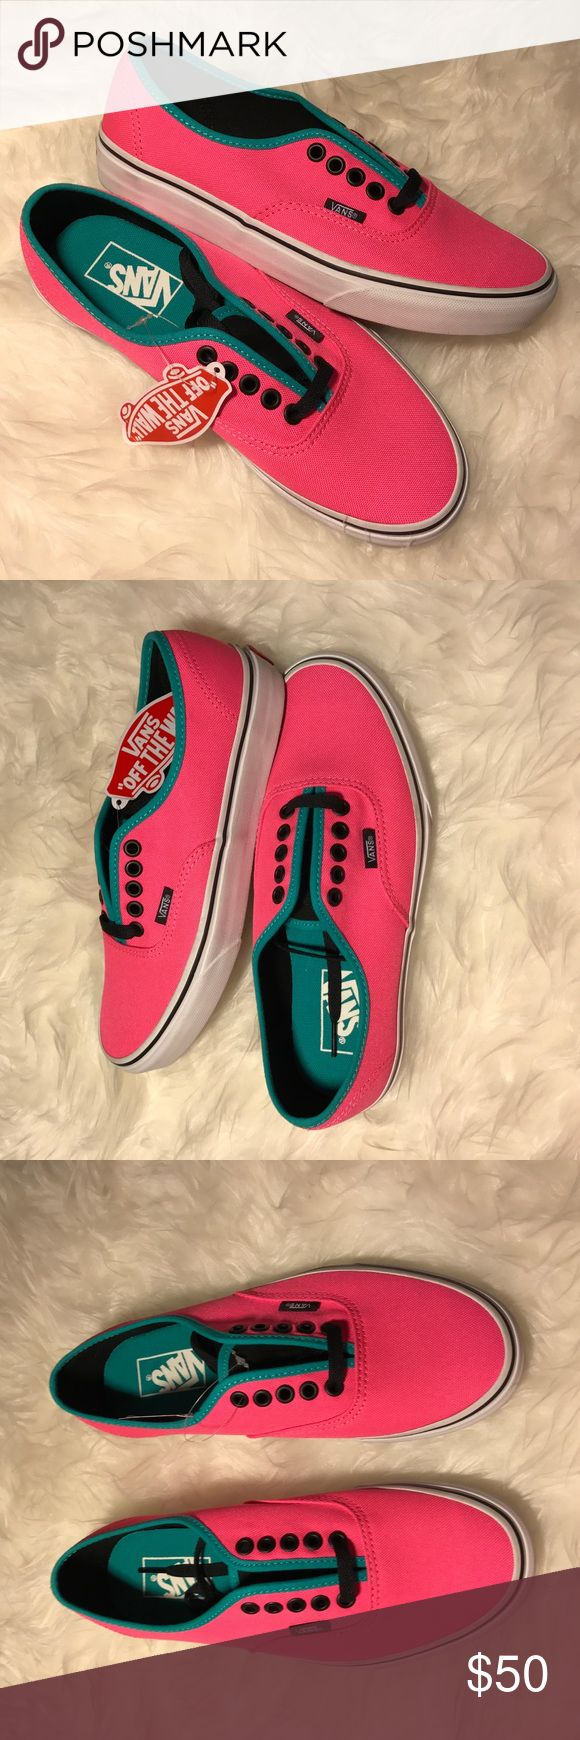 "VANS SIZE 8 NEON PINK, BLACK  & TEAL ""VANS OFF THE WALL NEON PINK & TEAL WOMENS SIZE 8"" 💗NO TRADES💗  -brand new -neon pink with interior-edge teal -Black shoelaces -this also work as a men's/boys 6.5 as shown on the interior tag -rubber soles -iconic shoe -Black eyelets to match the black shoelaces -comes from a smoke/pet free home Vans Shoes Sneakers"